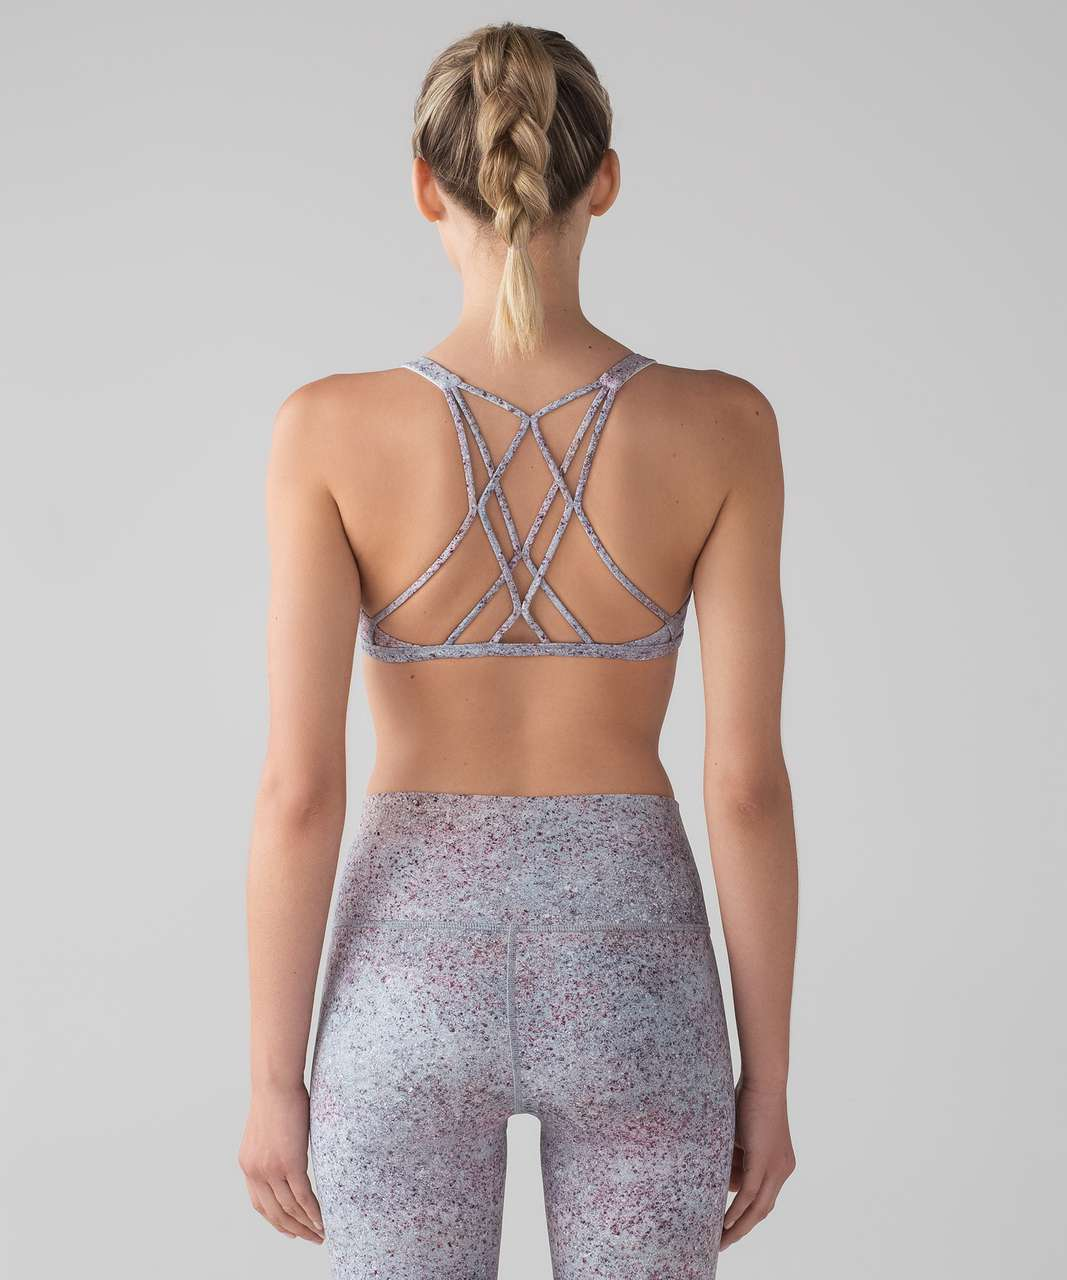 08c934cf18 Lululemon Free To Be Zen Bra - Summer Haze Multi - lulu fanatics